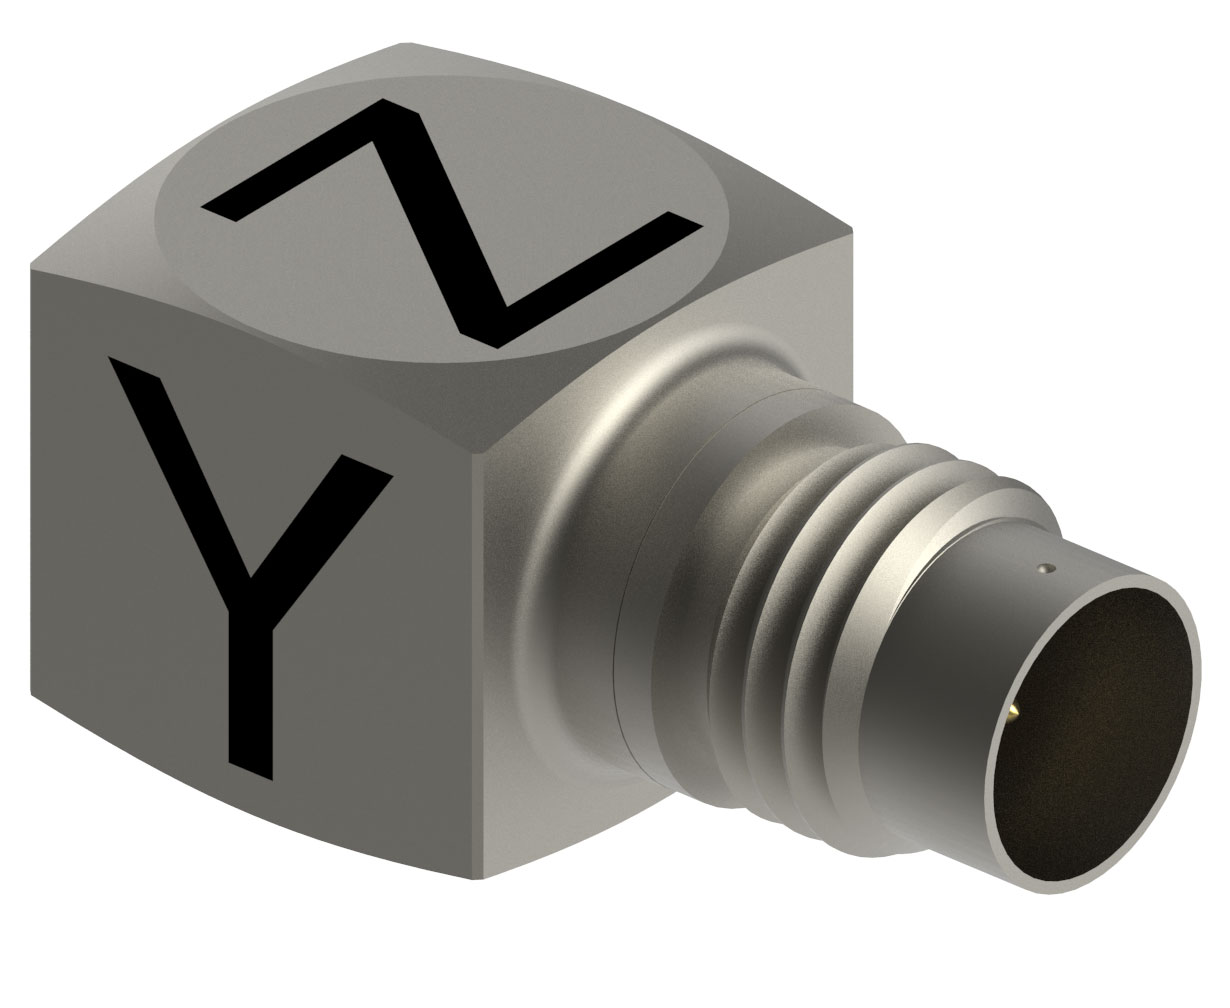 Miniature Triaxial Accelerometer is hermetically sealed.